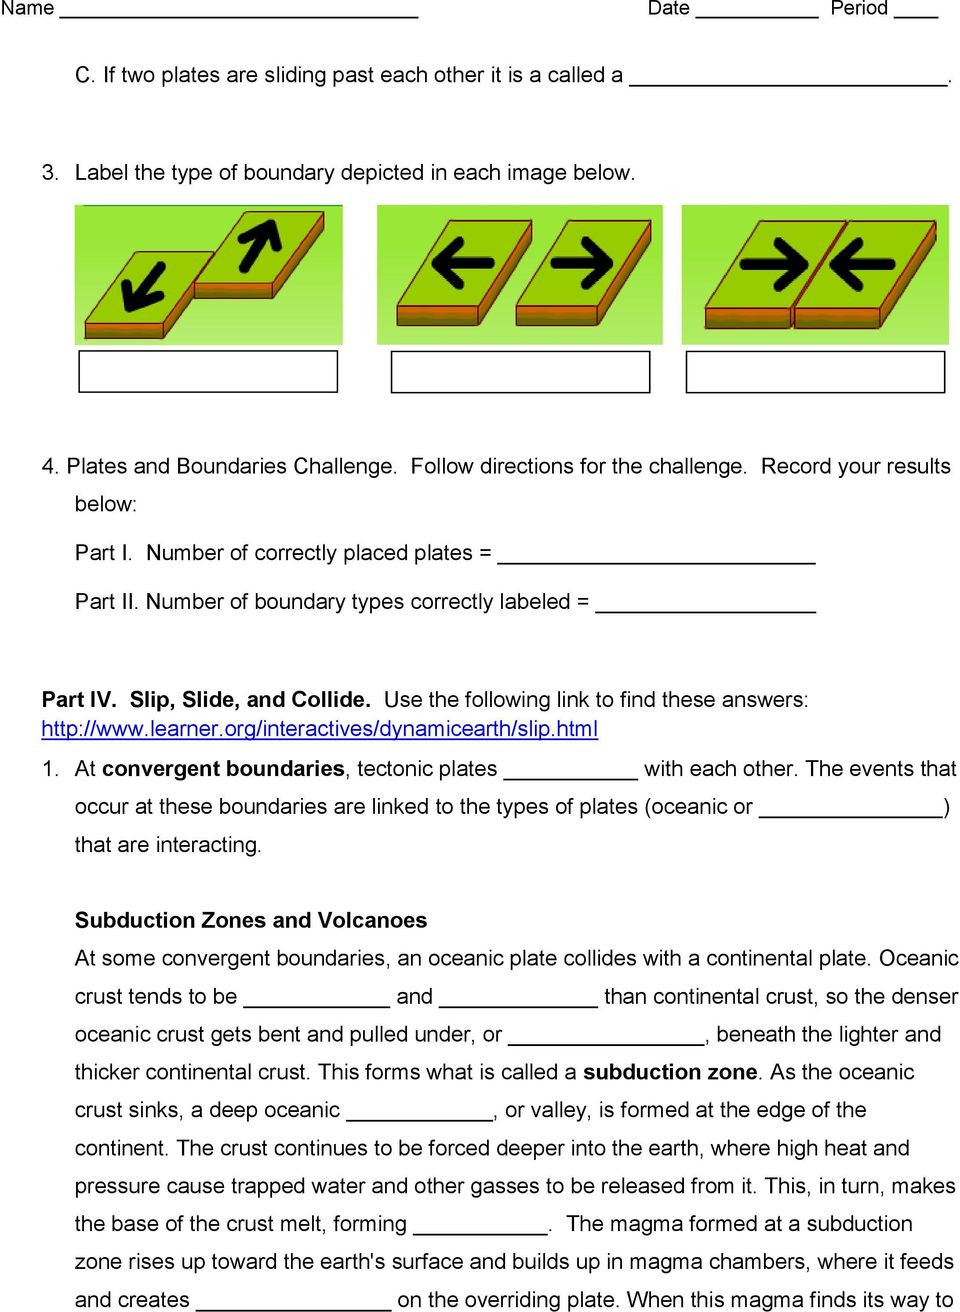 Plate Tectonics Worksheet 6th Grade Plate Tectonics Web Quest Pdf Free Download